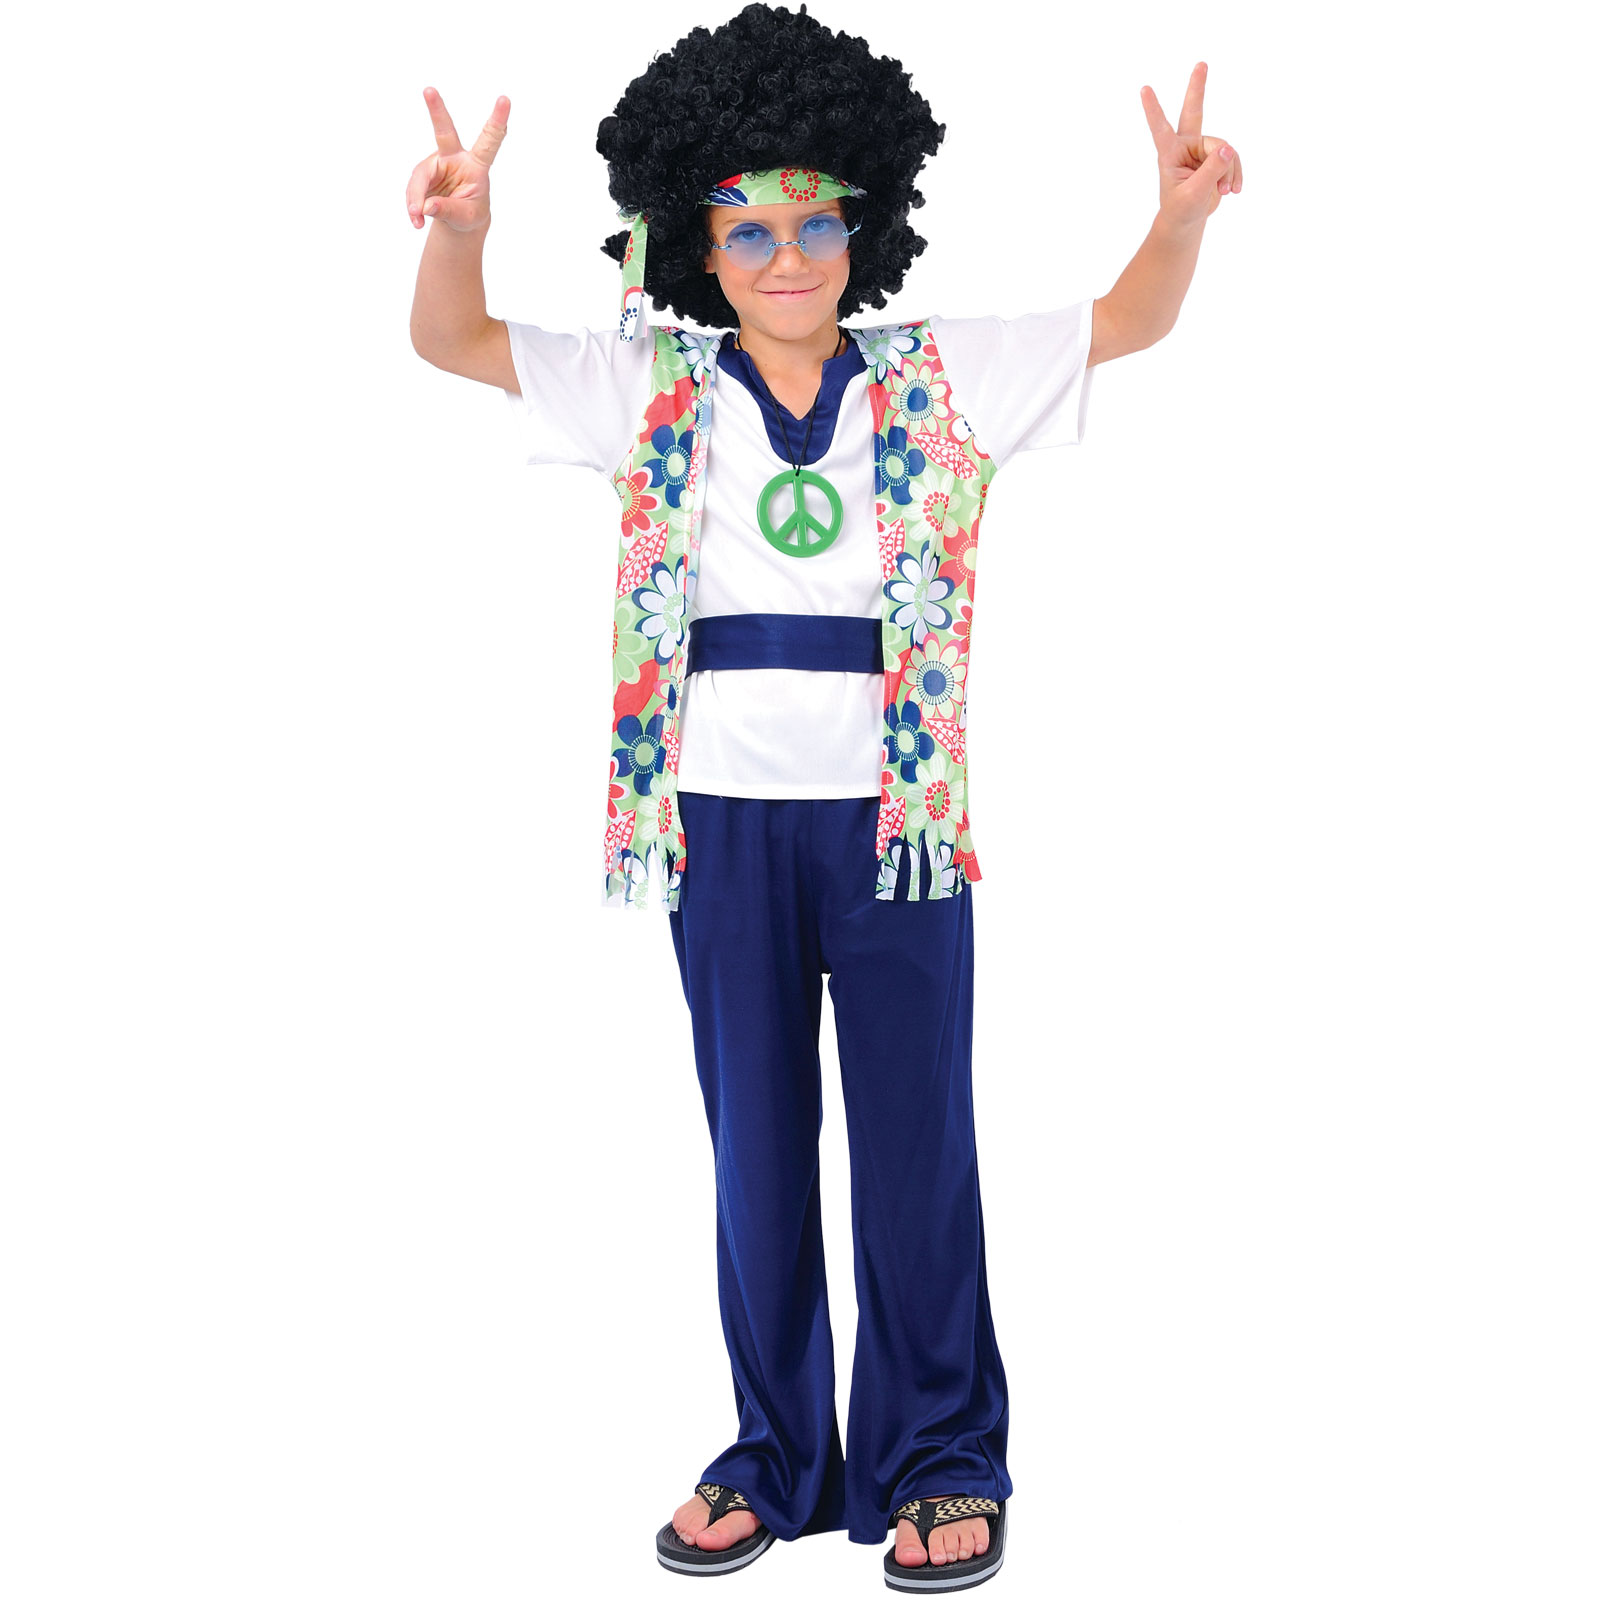 Childrens 60s Hippie Dude Boys Fancy Dress Up Party Halloween Costume Outfit New | eBay